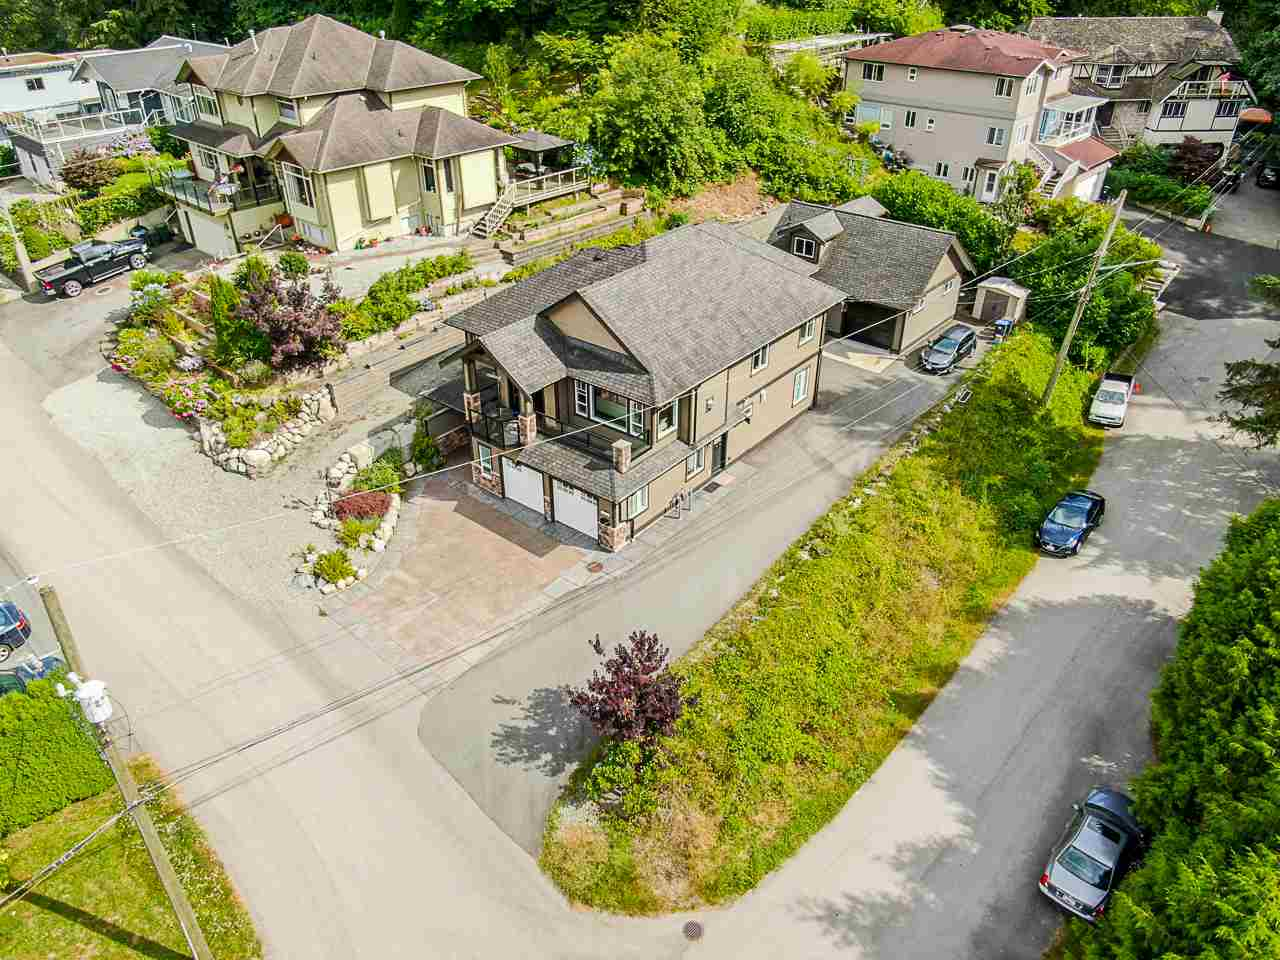 2801 IVY STREET - Port Moody Centre House/Single Family for sale, 5 Bedrooms (R2481875) - #30